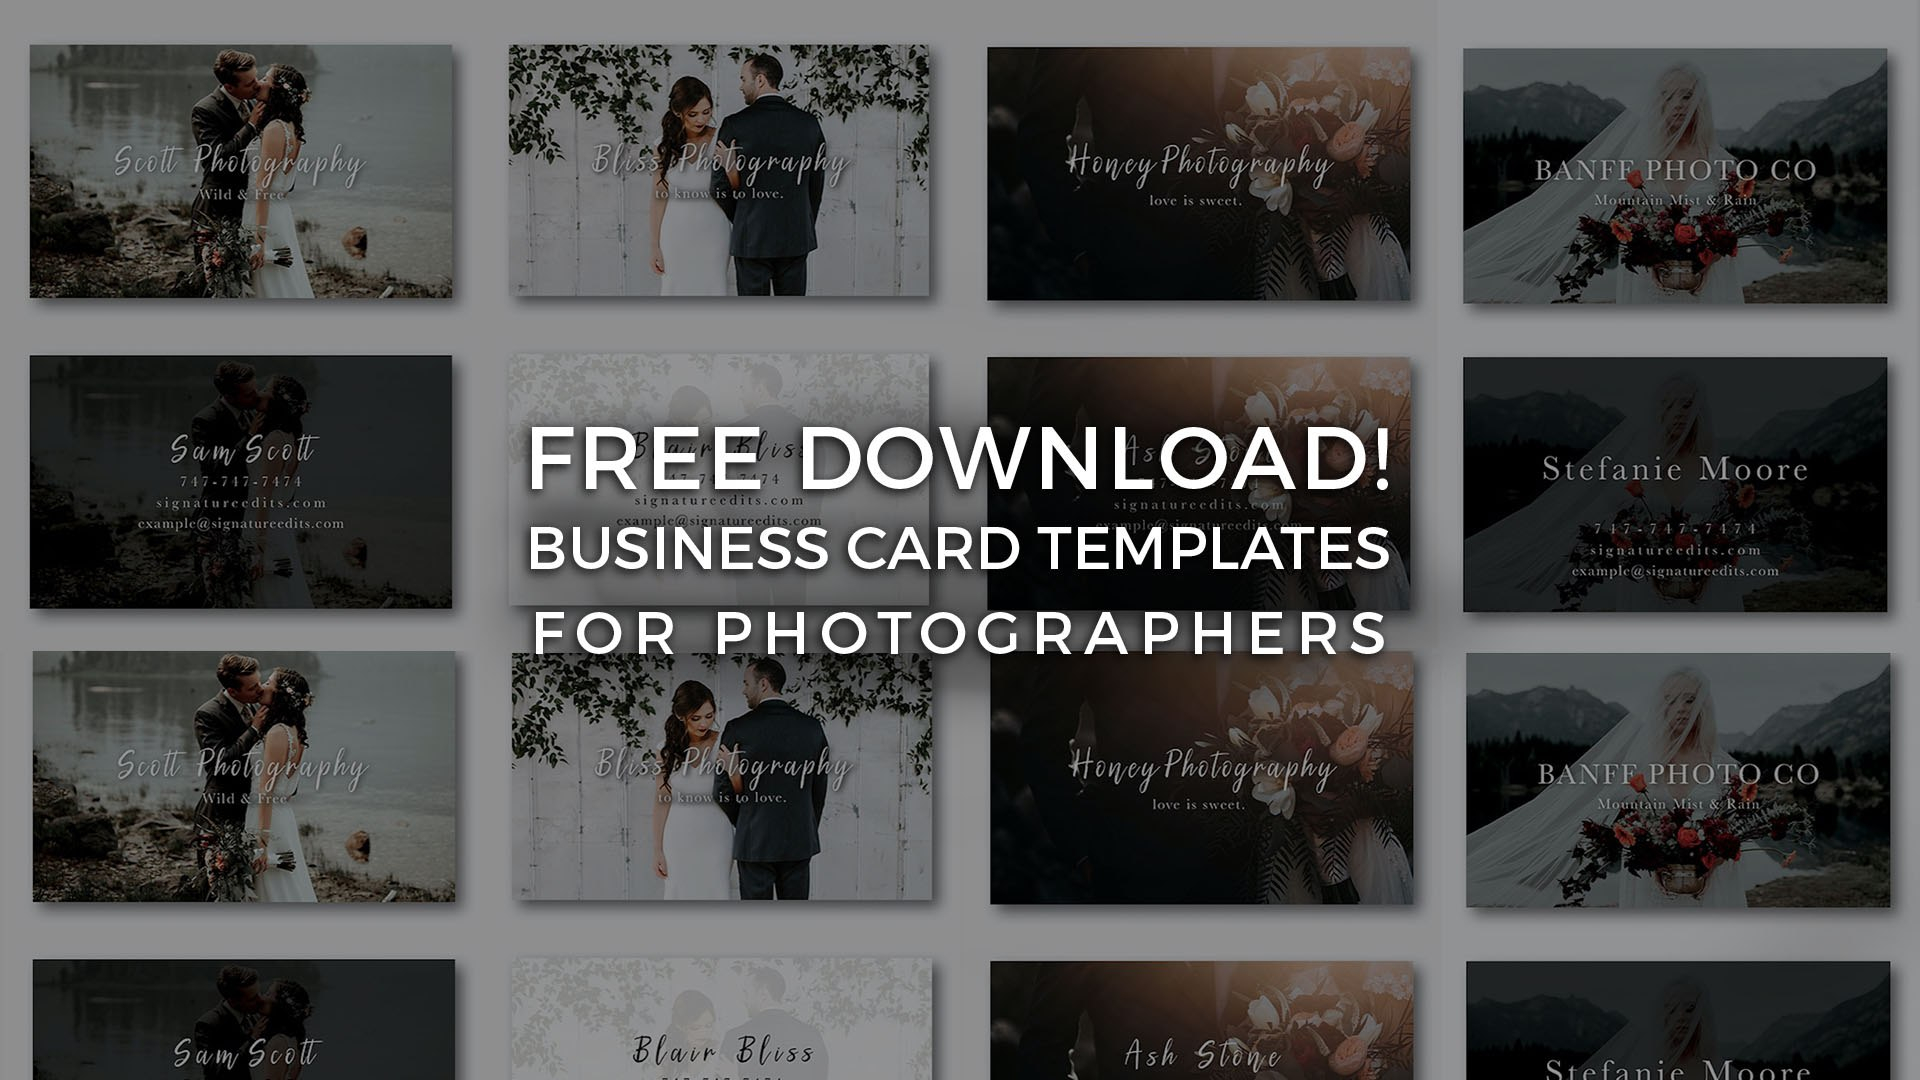 Free Photographer Business Card Templates  Signature Edits  Edit With Free Business Card Templates For Photographers